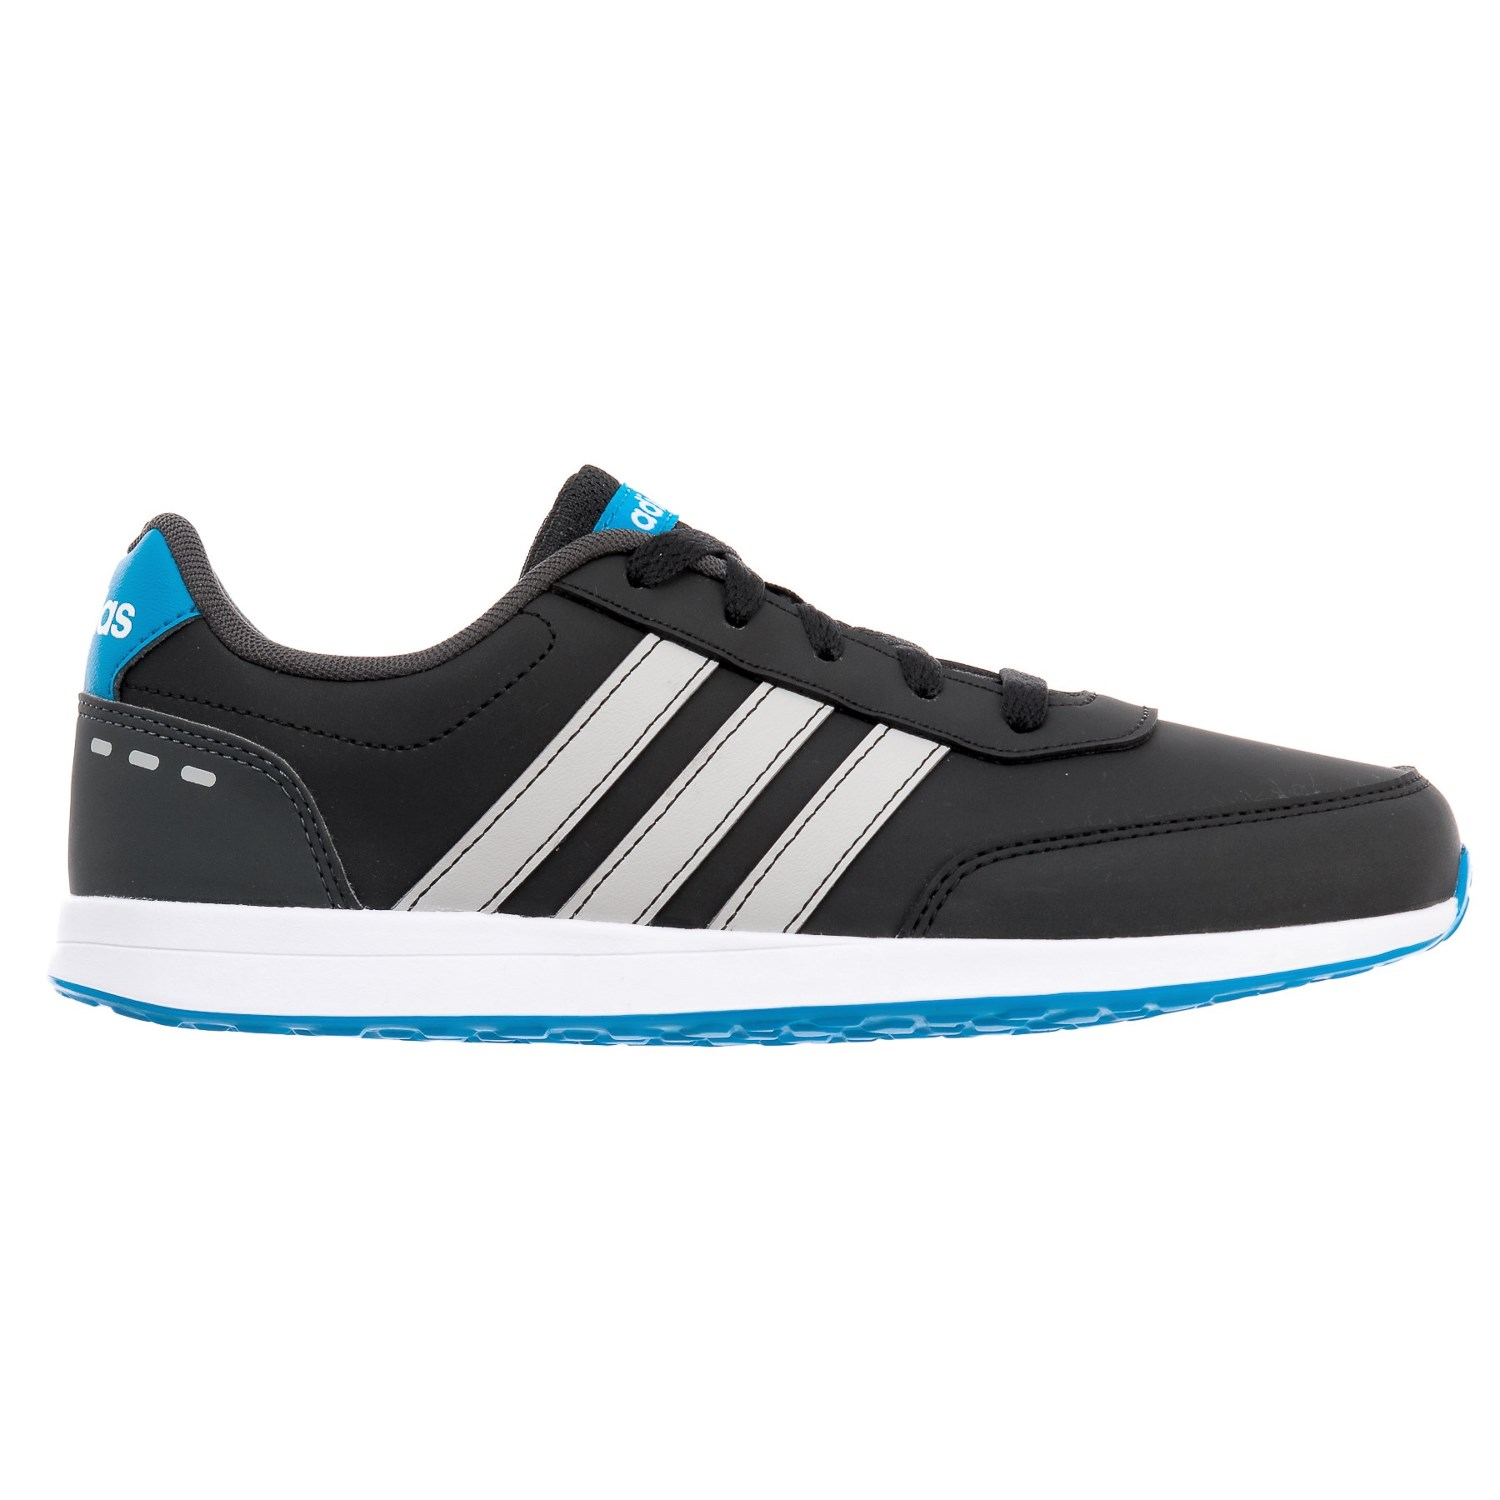 85da9145c5 adidas VS Switch Shoes (For Big Boys) - Save 25%